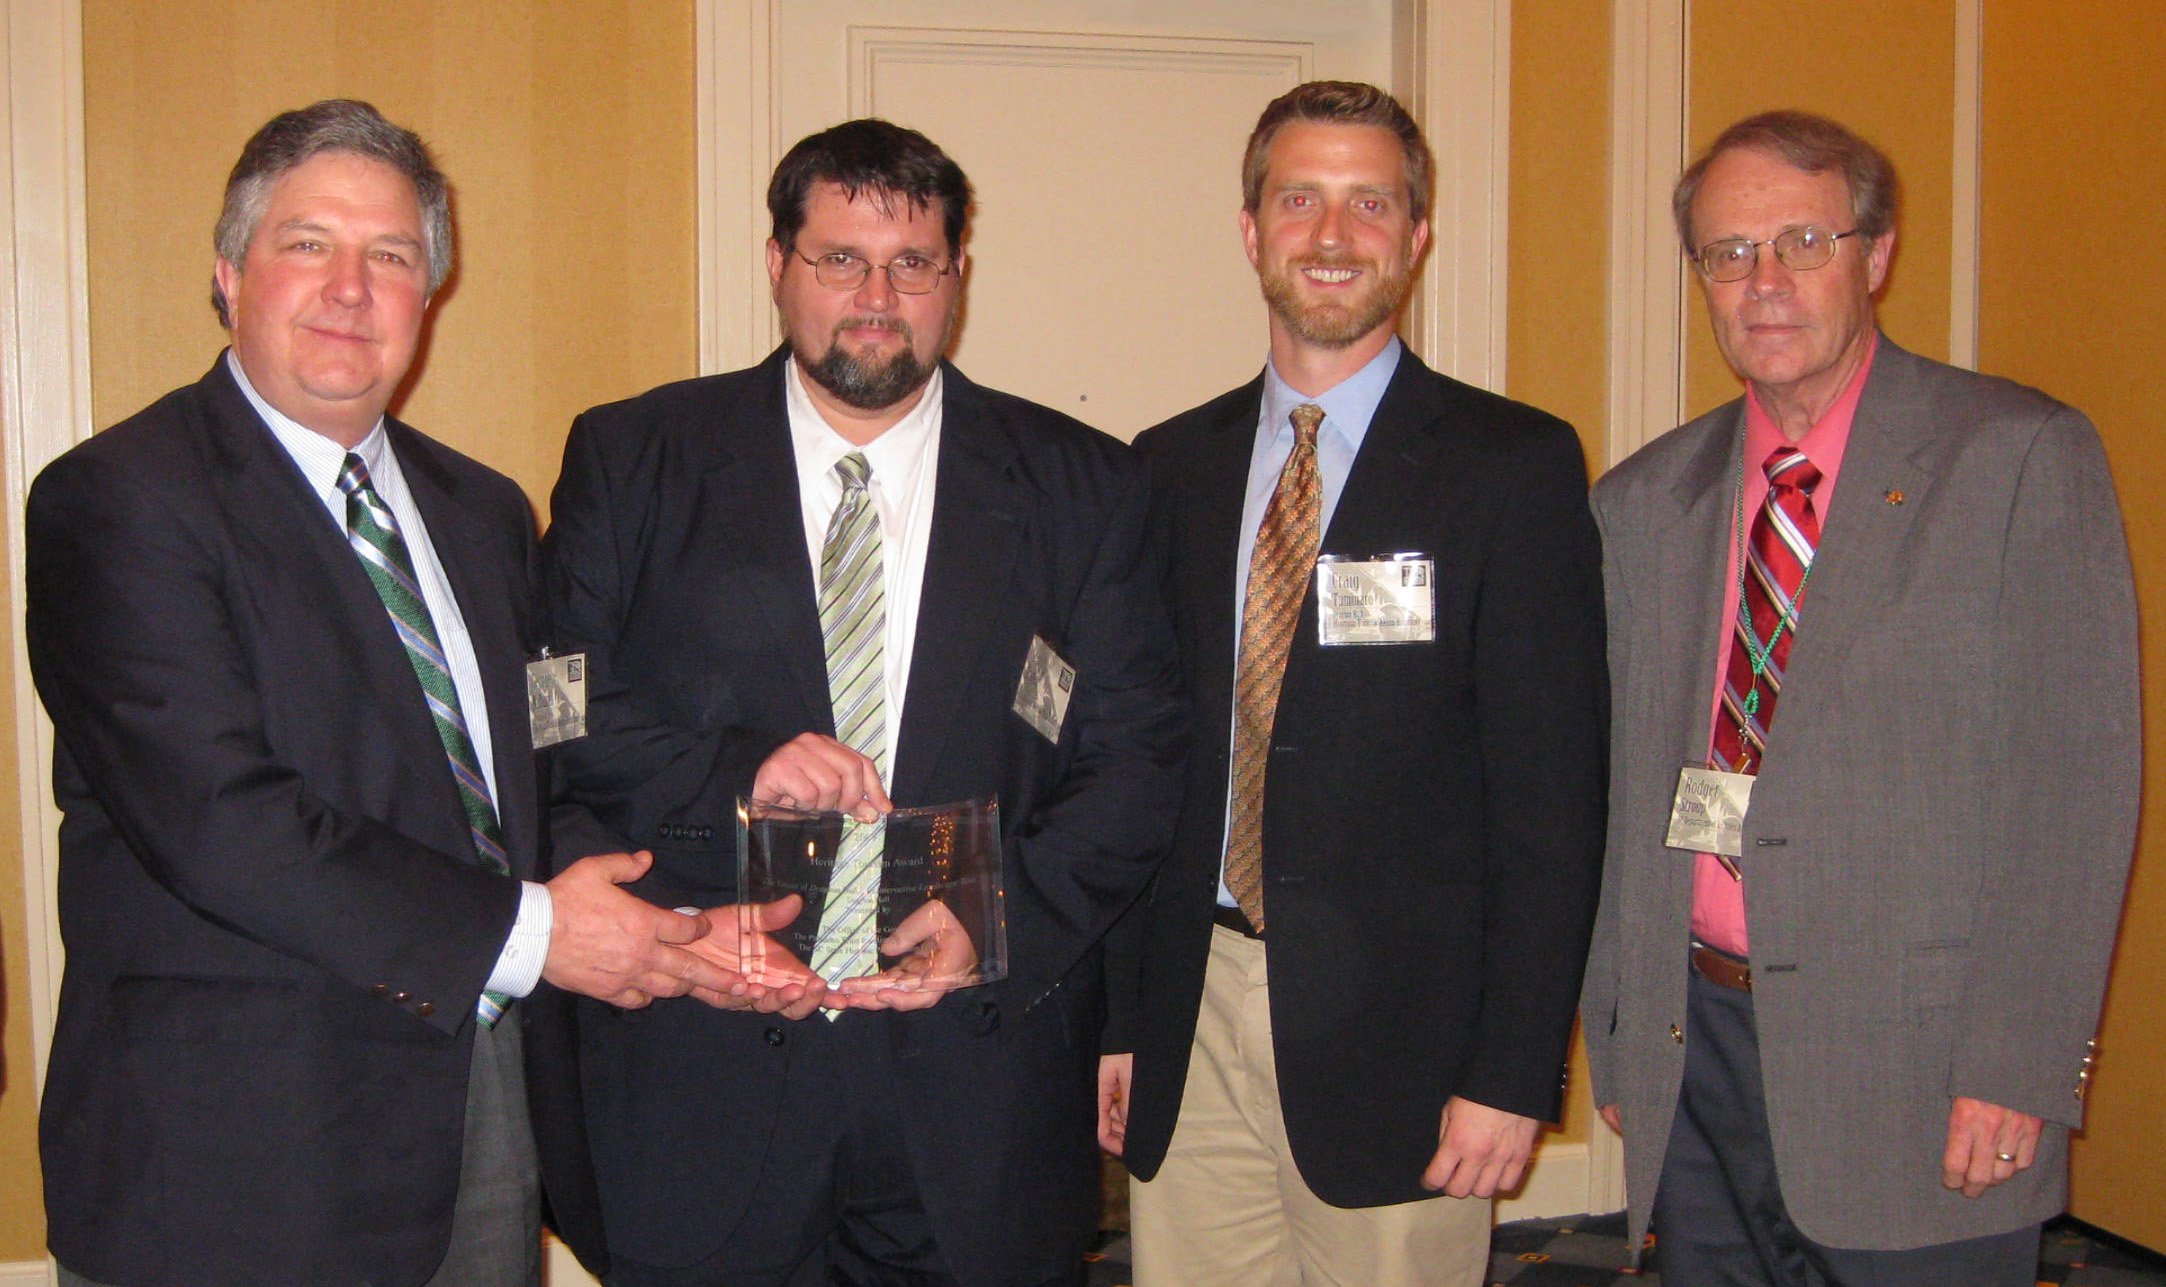 (From L to R) Executive Director George McDaniel and Scott English, chief of staff for Governor Mark Sanford, hold Drayton Hall's Heritage Tourism Award, with Director of Museum Interpretation Craig Tuminaro and Rodger Stroup, director of the SC Department of Archives and History.